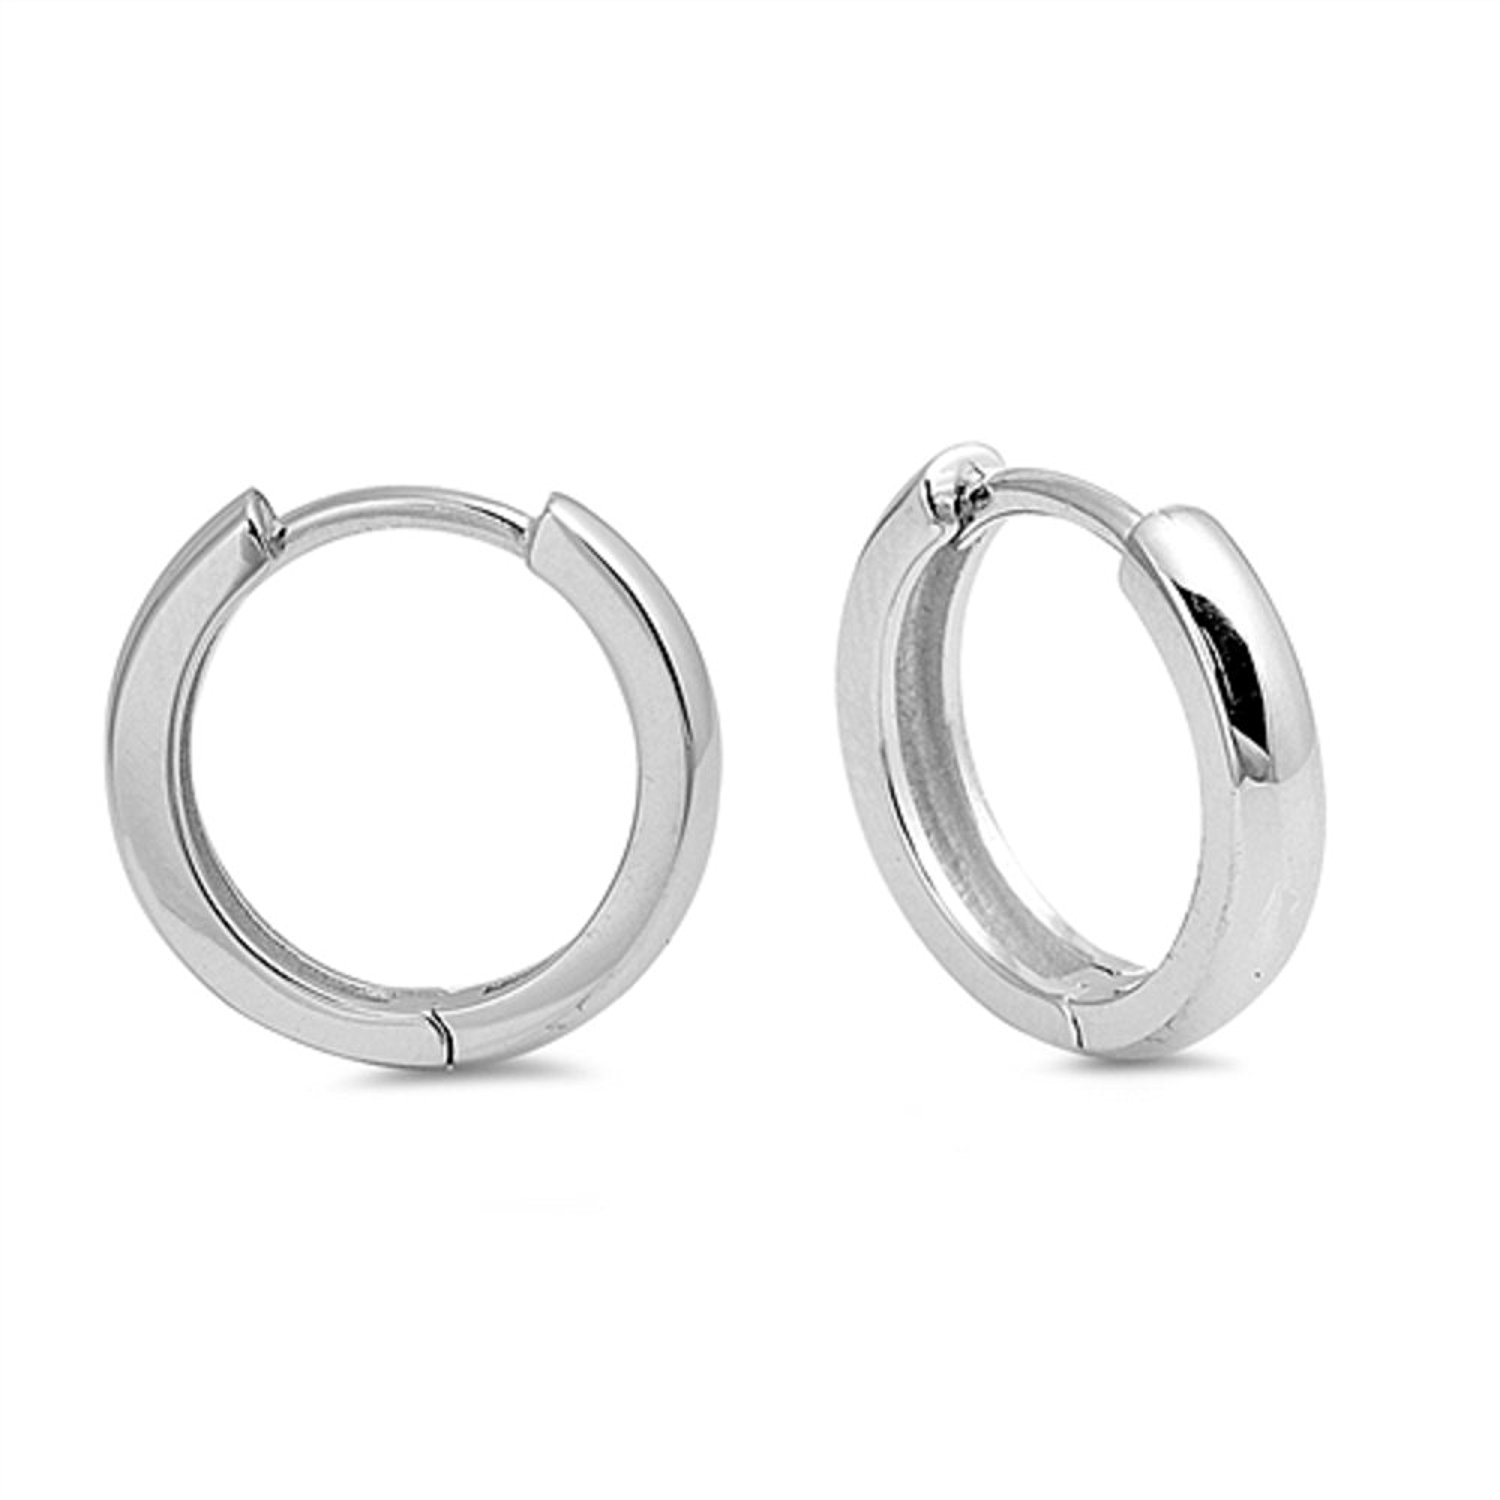 Micro Pav? Liara Polished And Nickel Free Setting Oval Ear Studs With Cubic Zirconia Sterling Silver 925